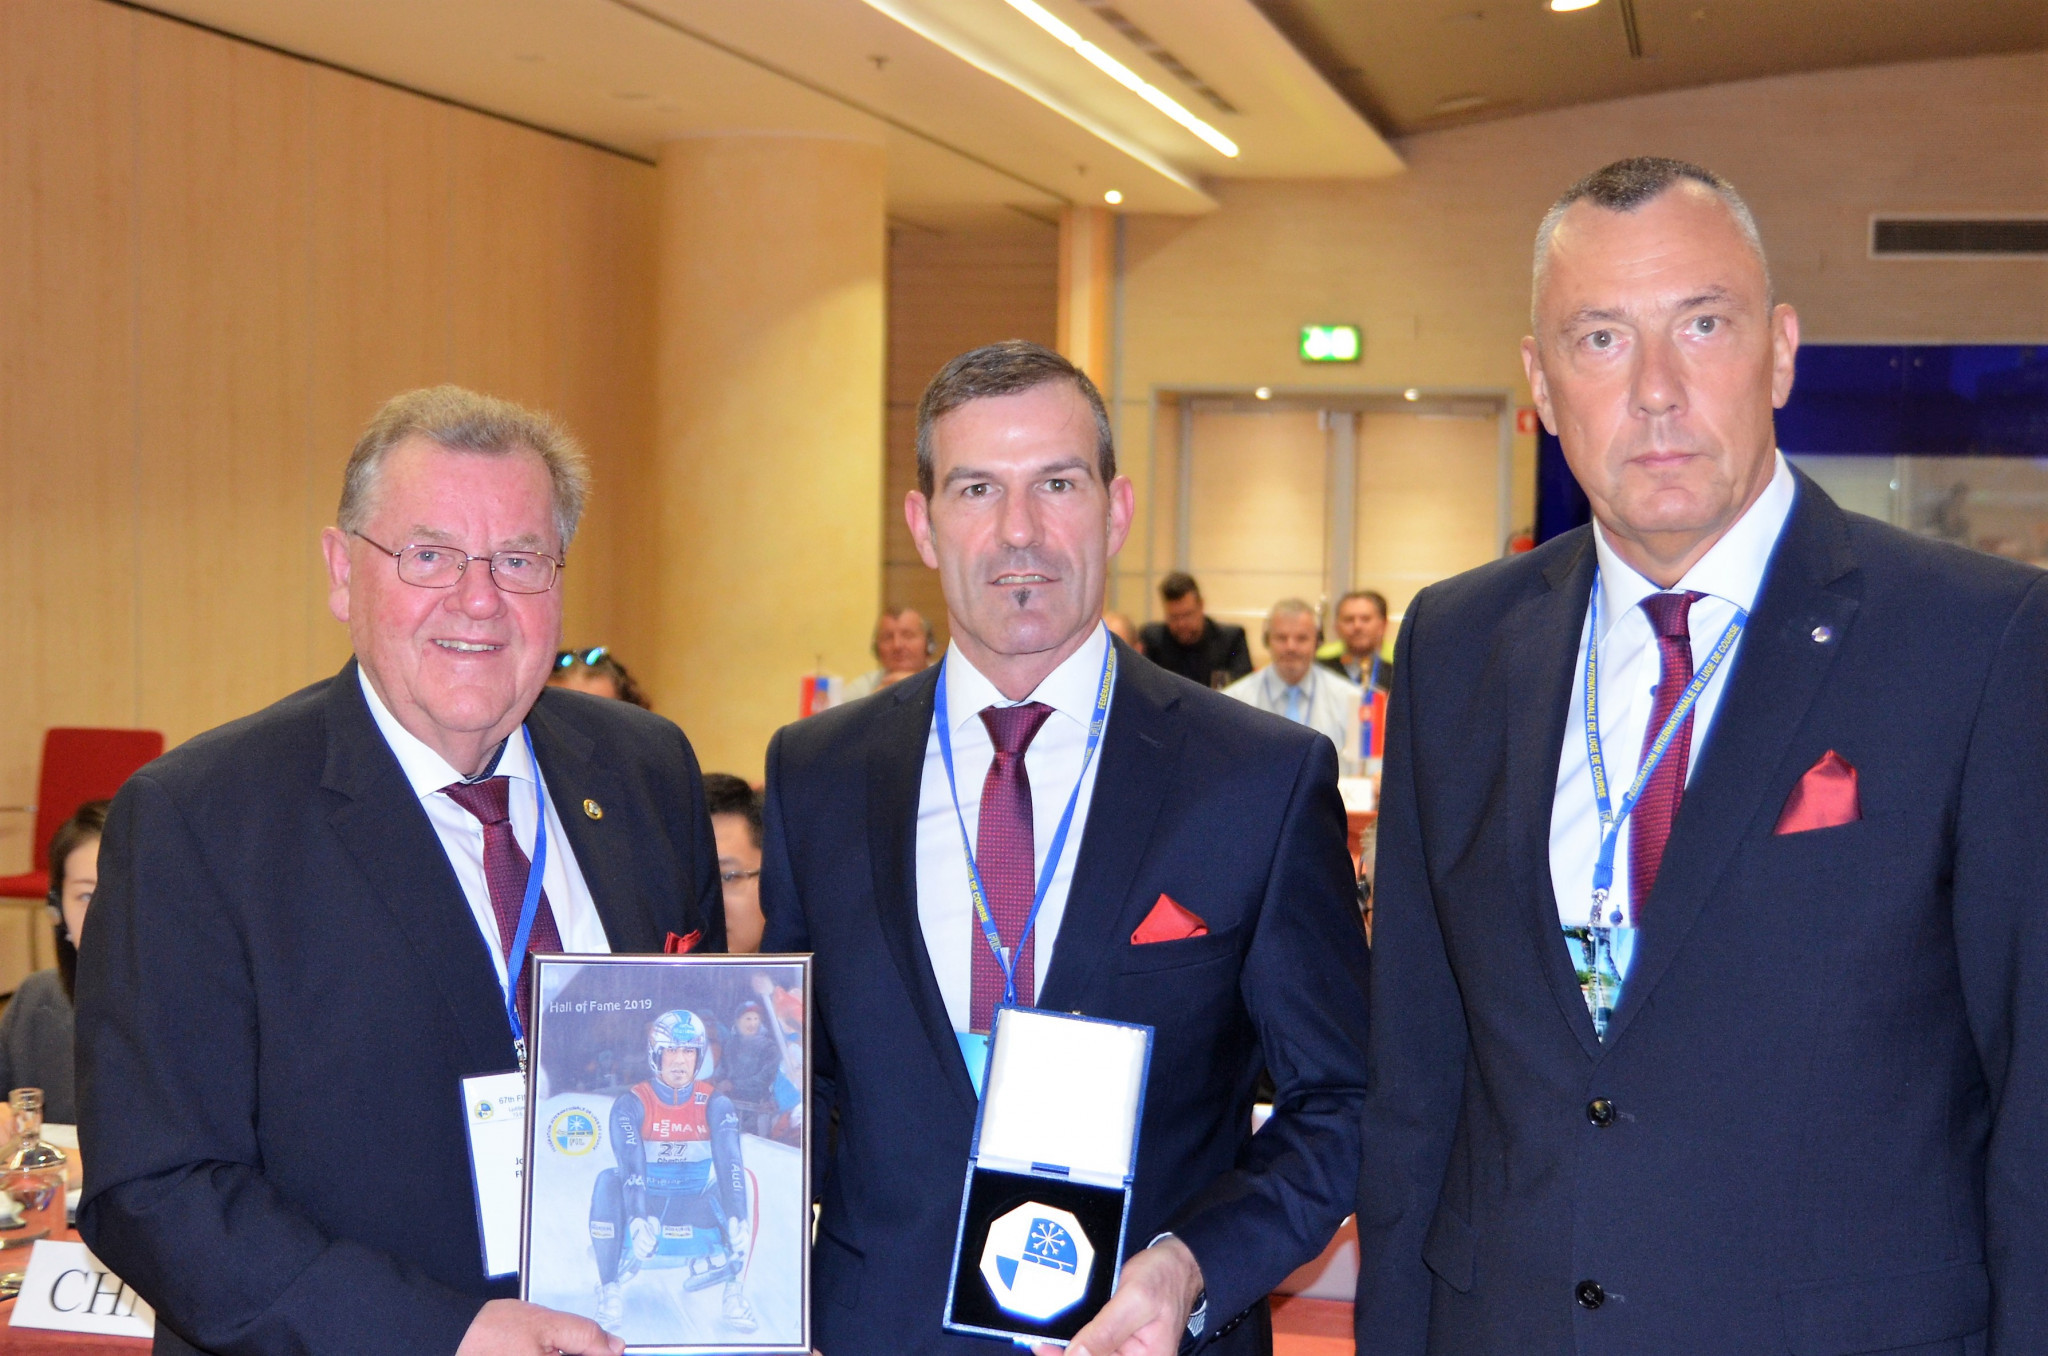 Luge legend Zöggeler inducted into Hall of Fame as FIL Congress begins